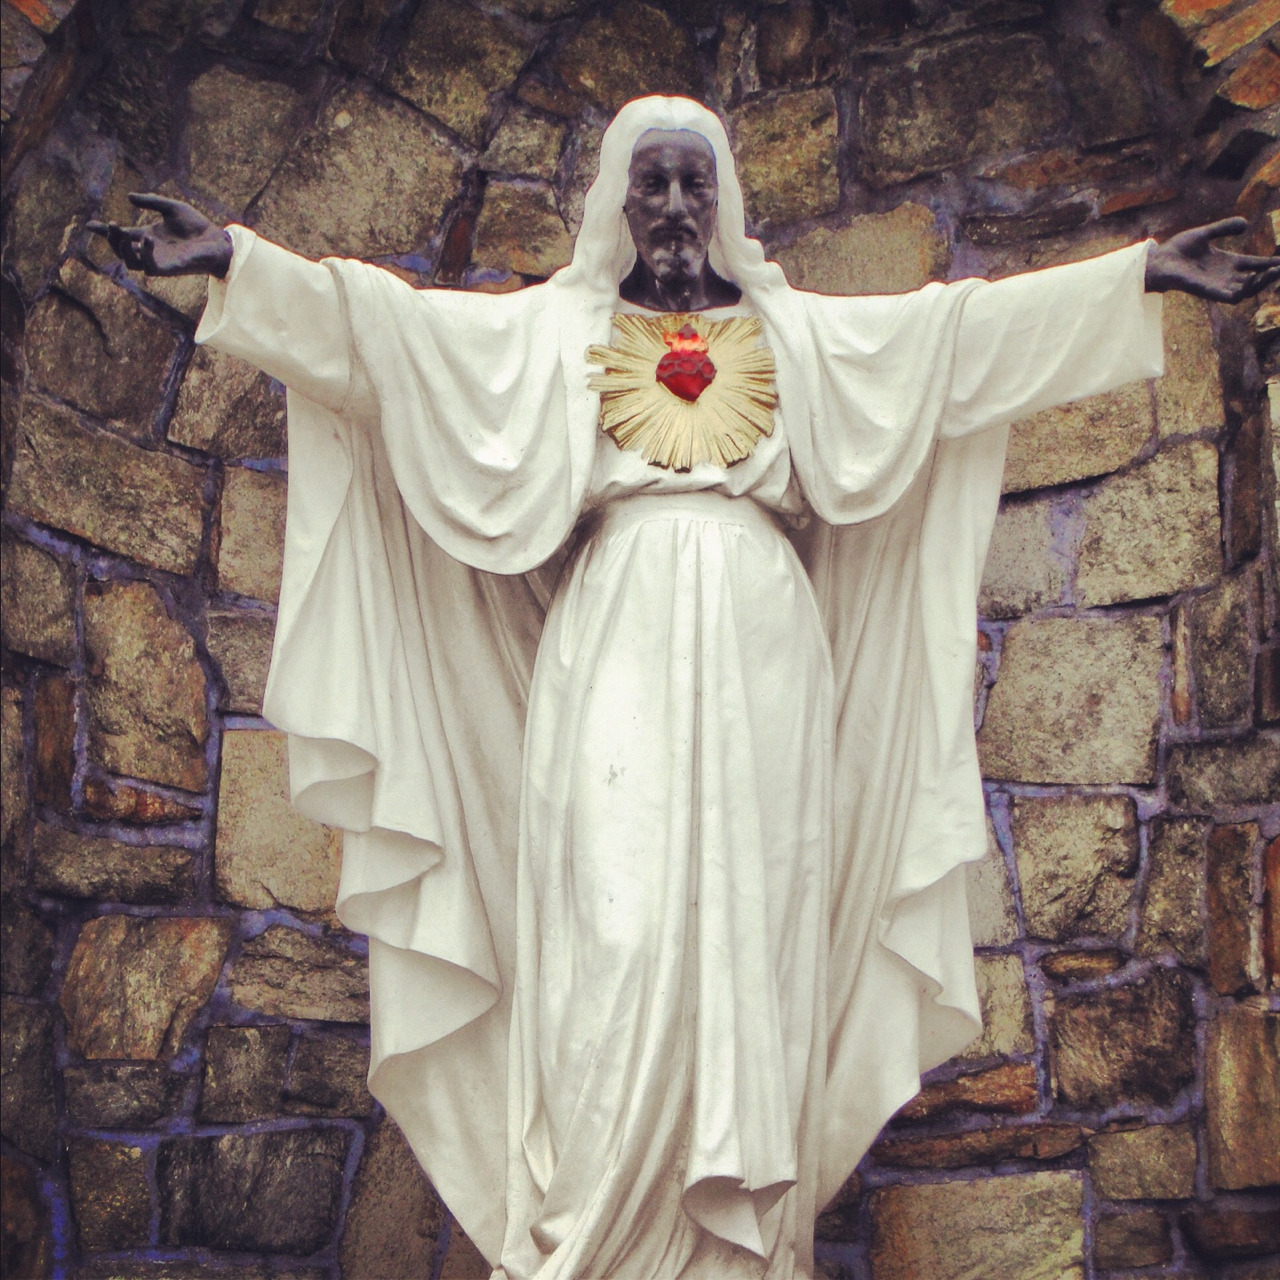 Black Jesus statue at Sacred Heart Major Seminary in Detroit, MI.